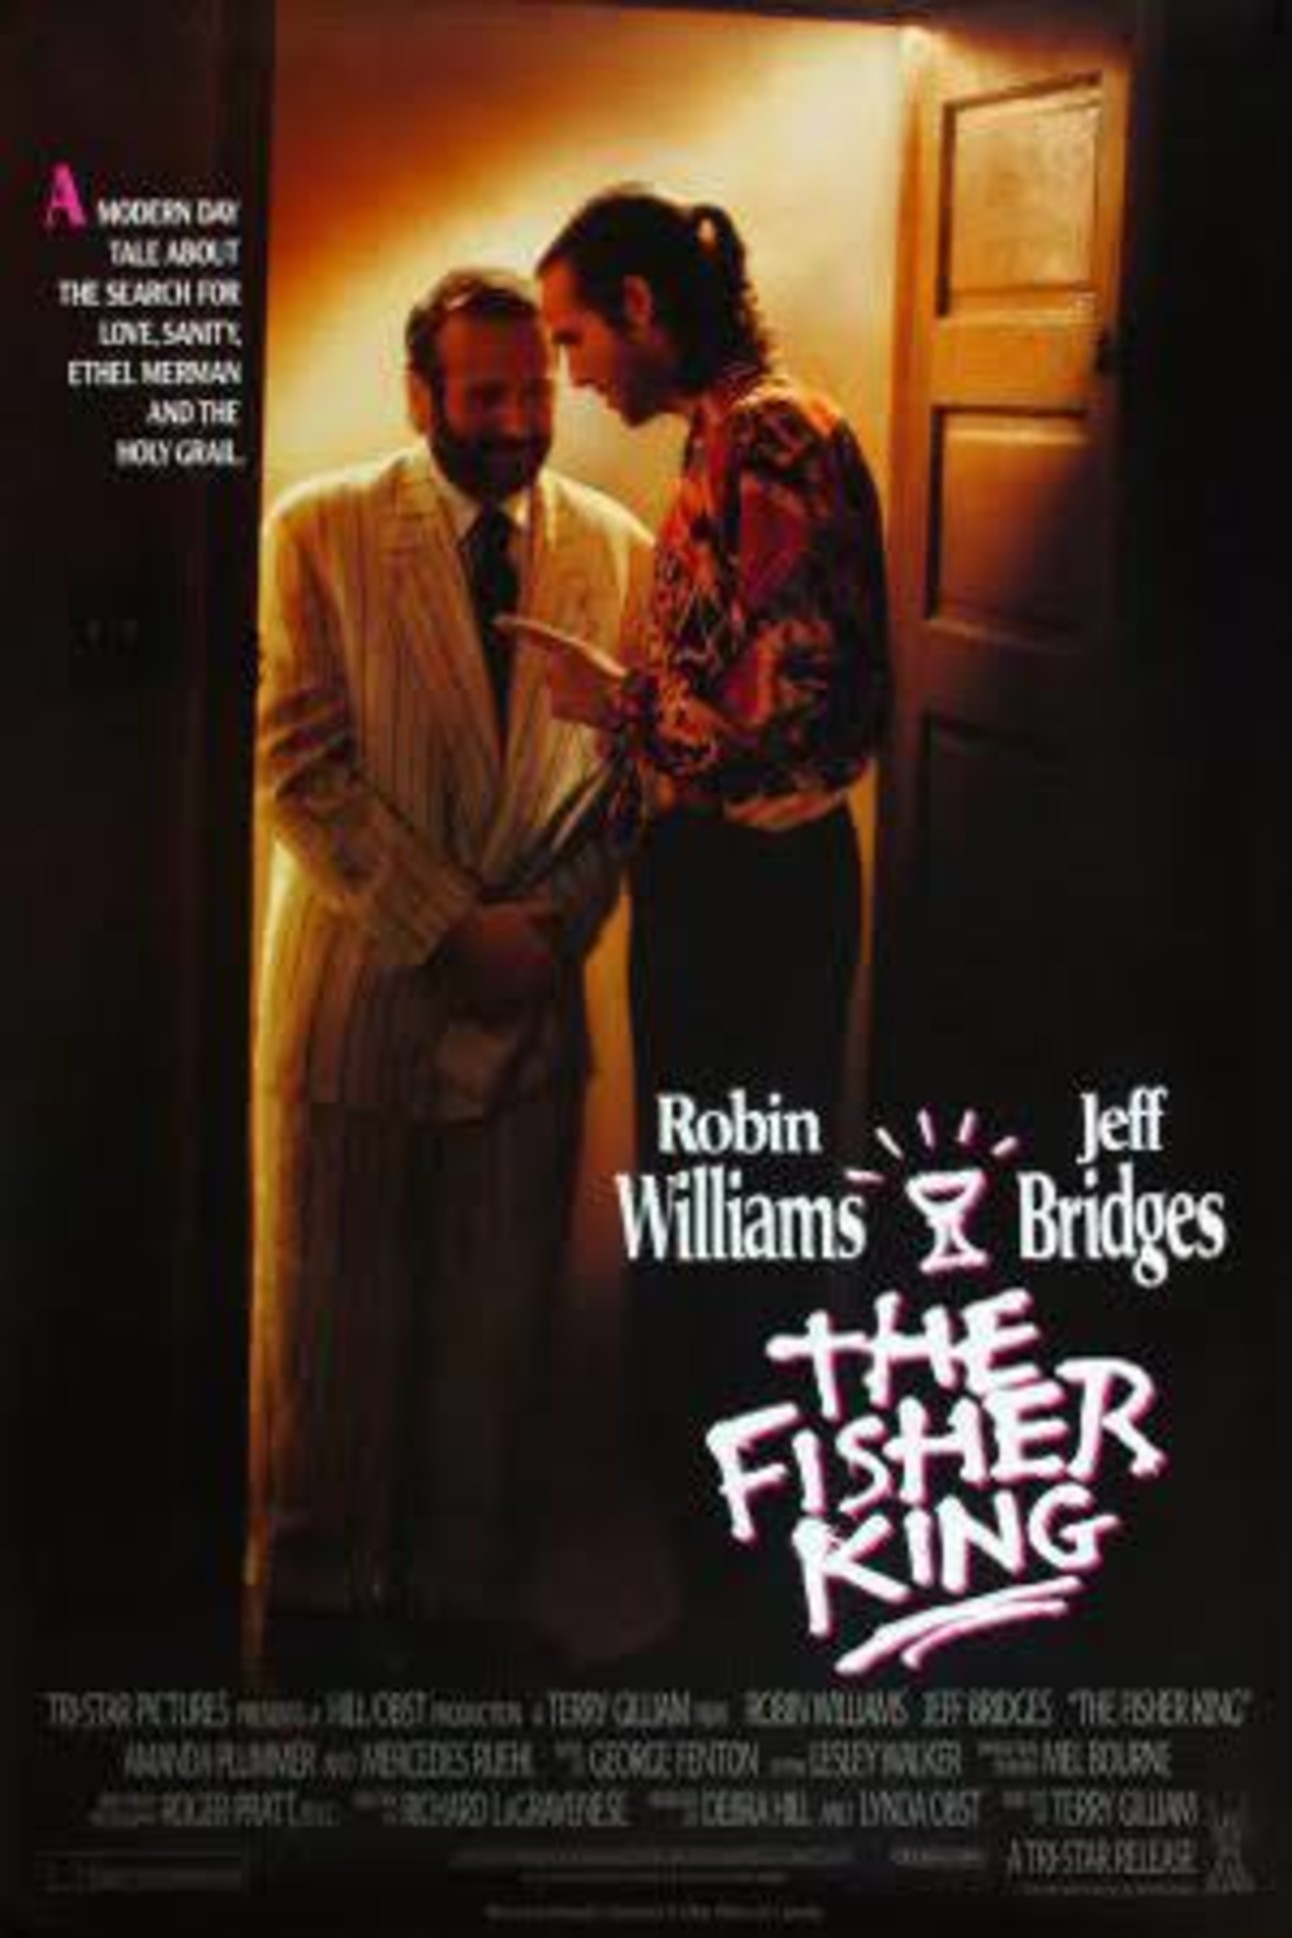 the-fisher-king.jpeg